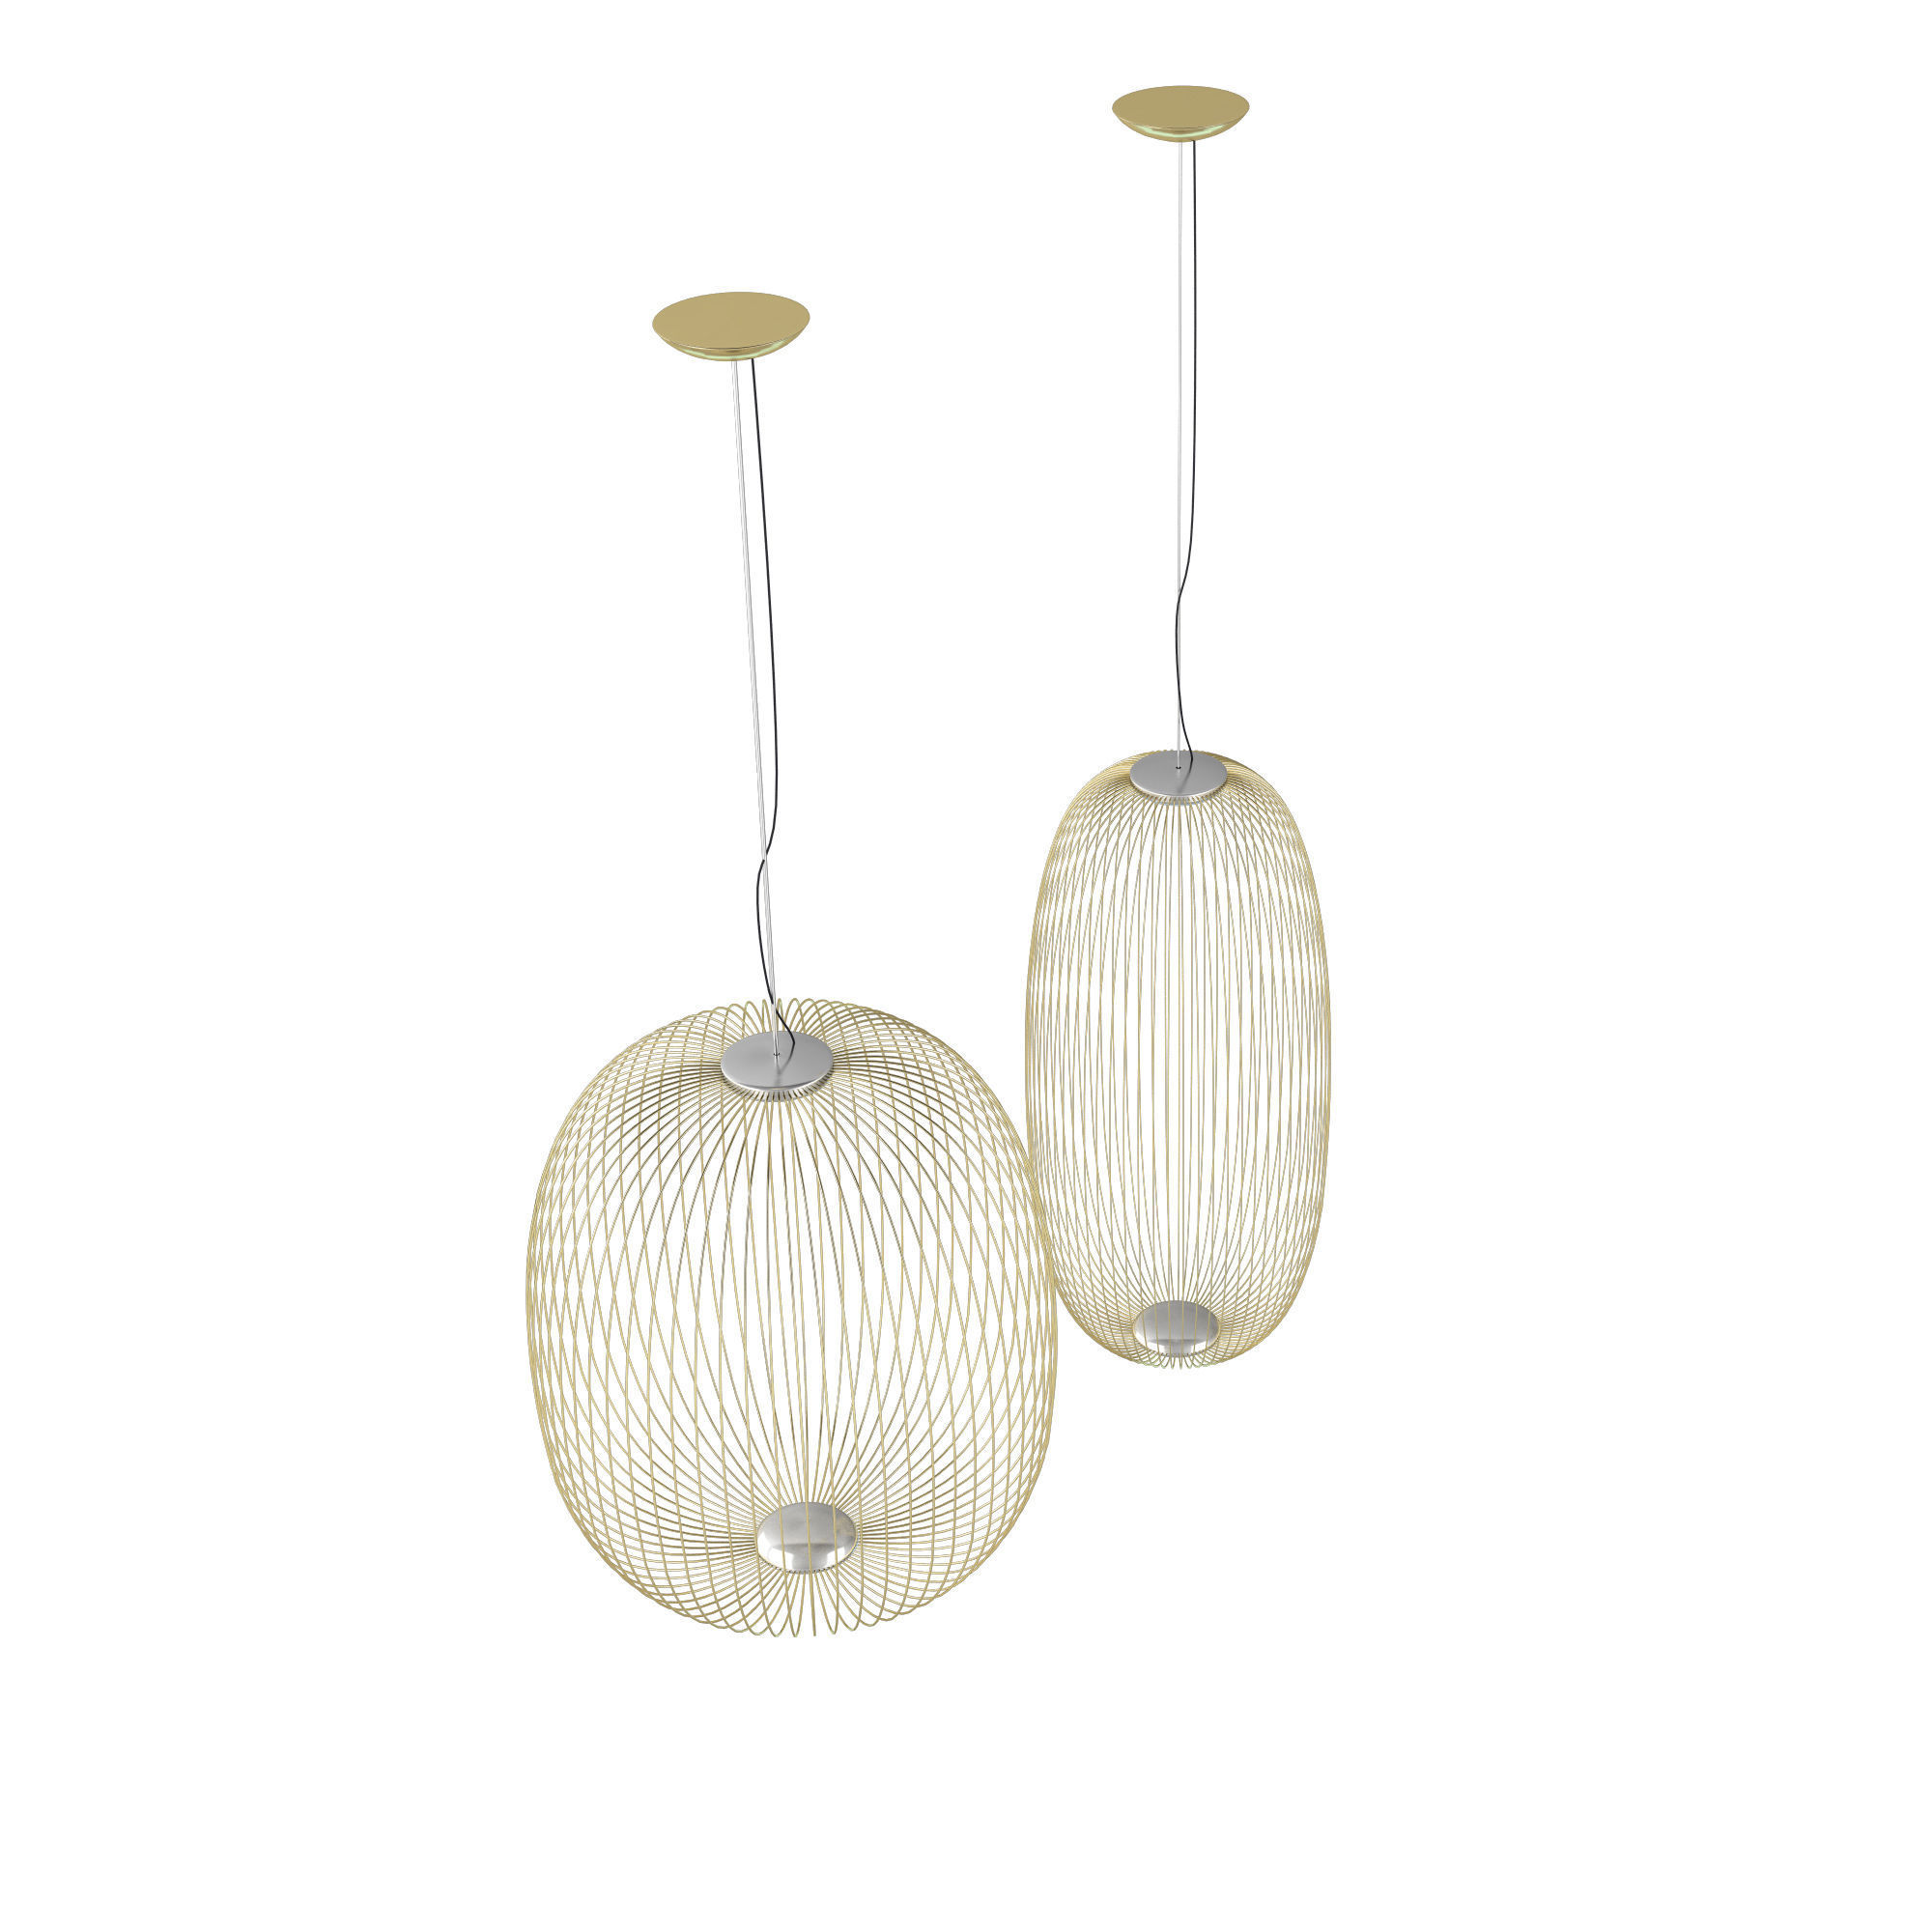 Foscarini Lights Light 18 Foscarini 3d Model